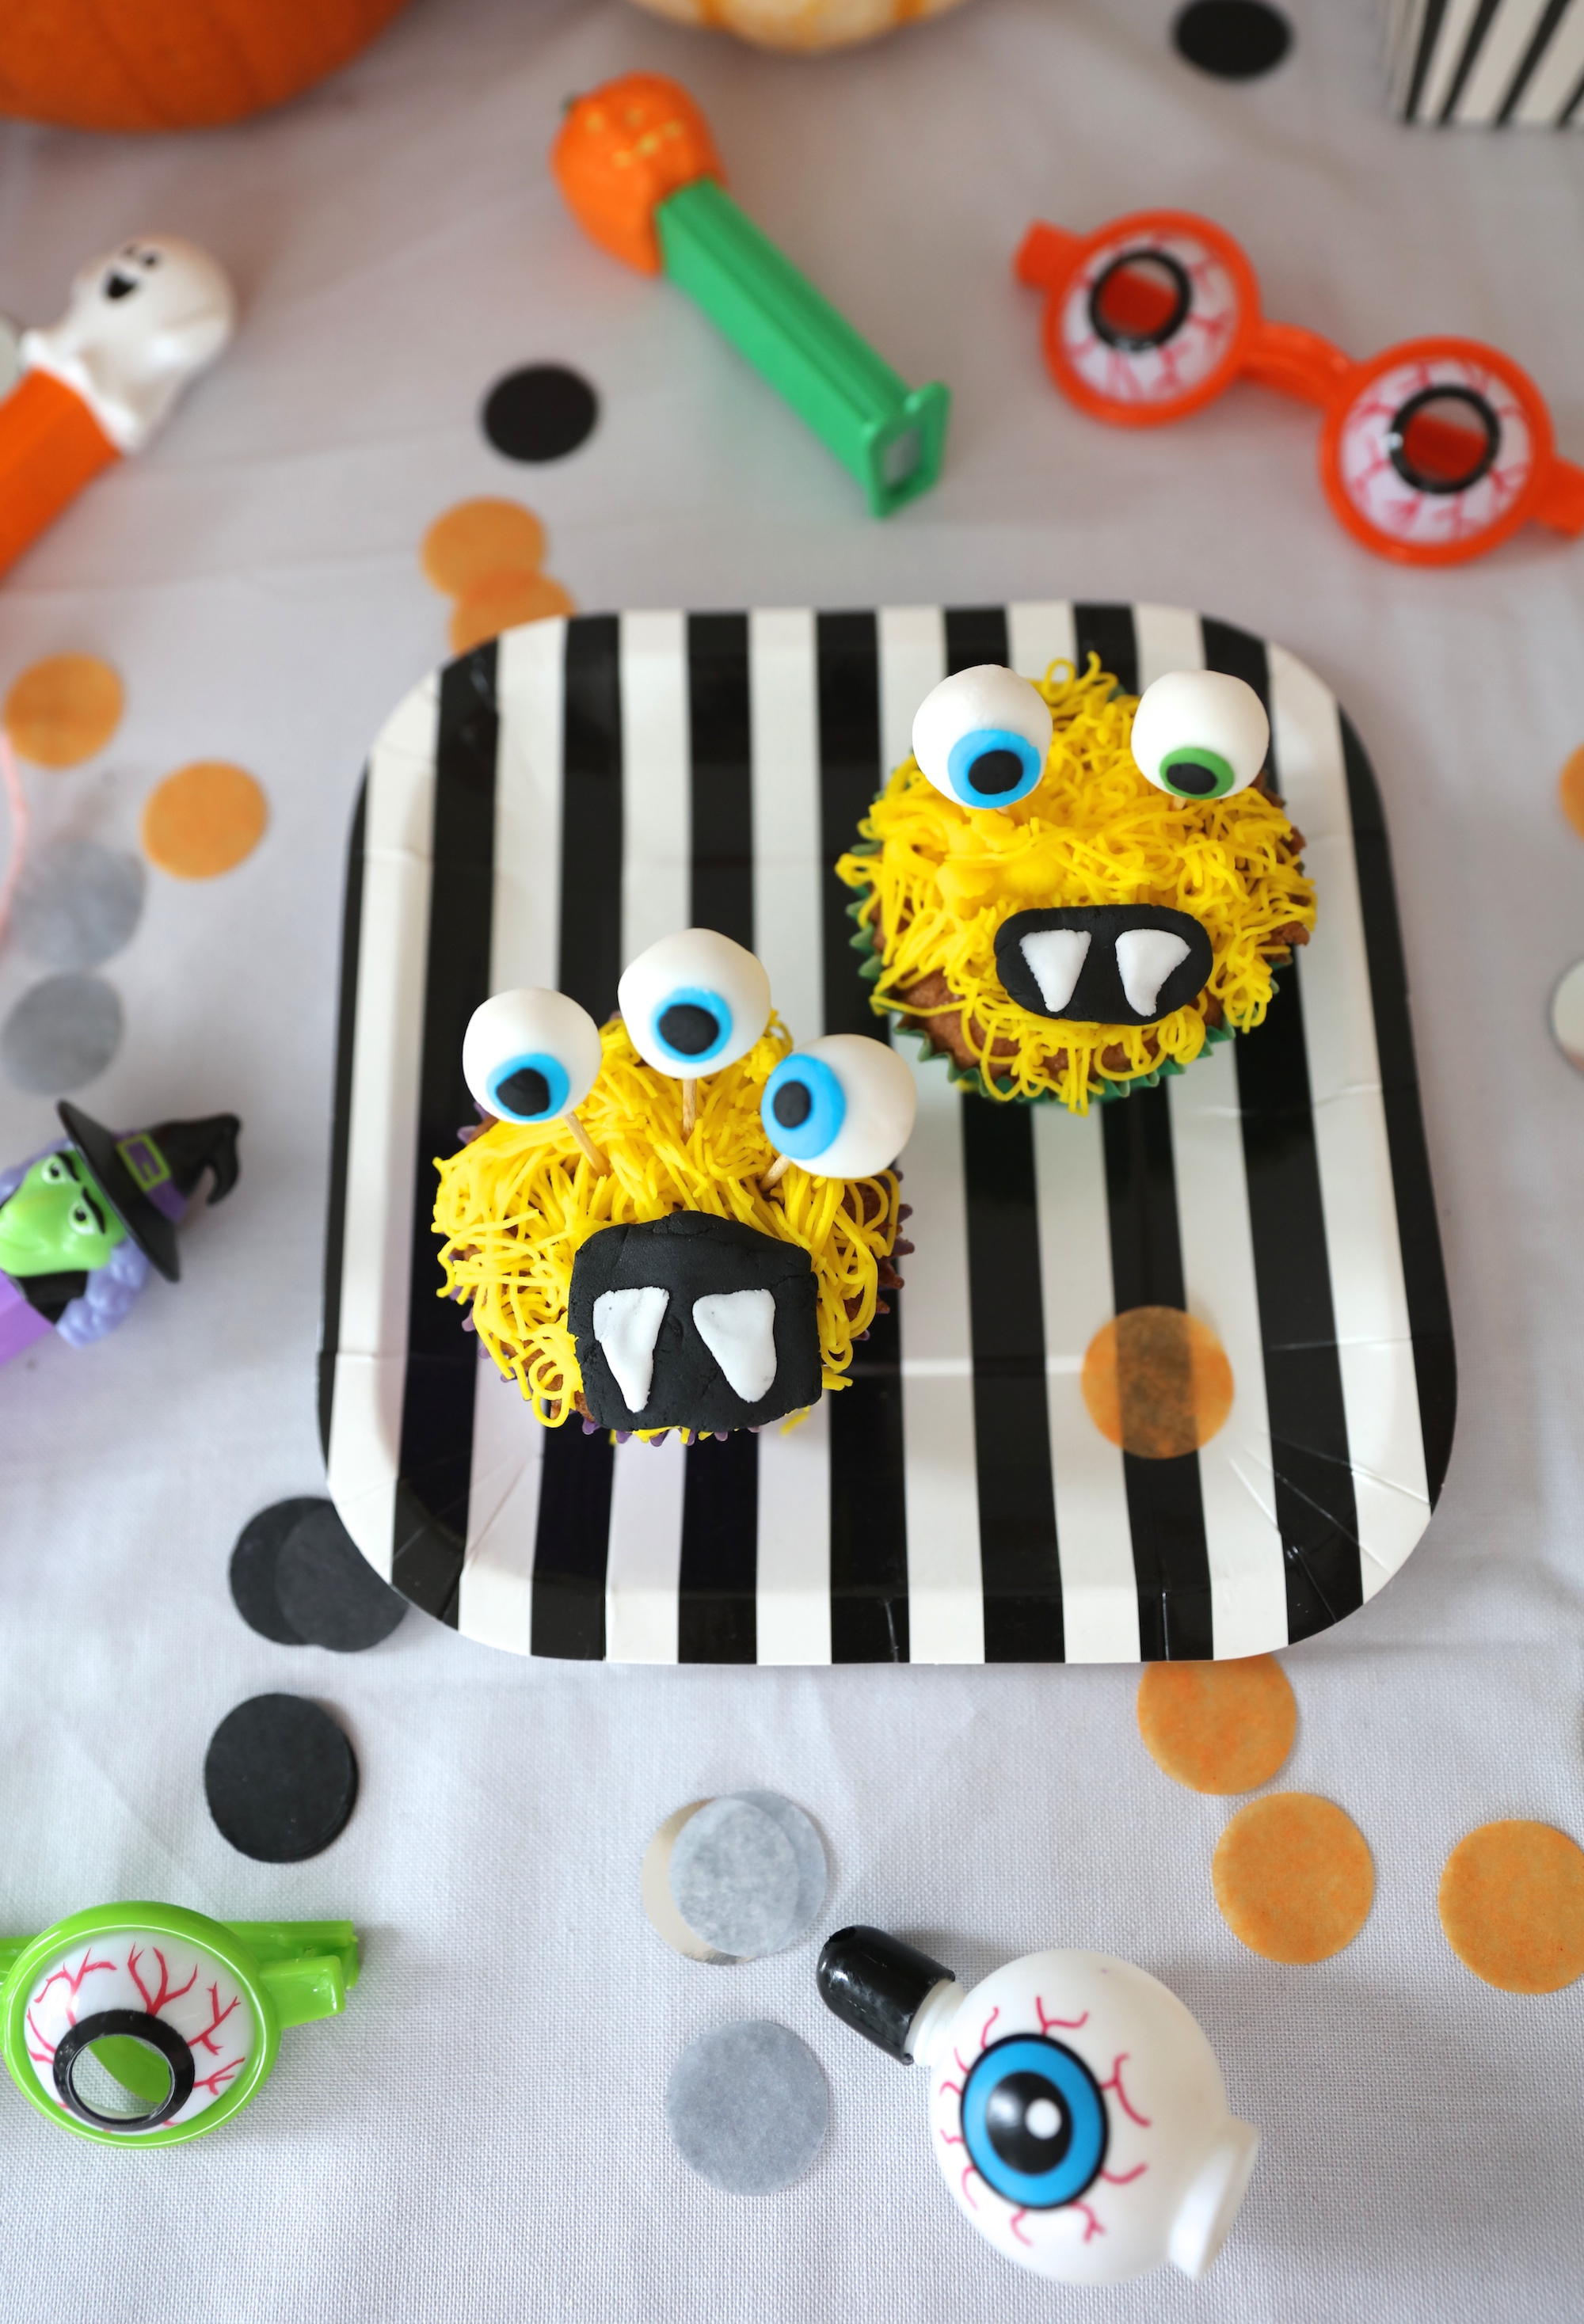 BKD_London_baking_monster_cupcakes_kit_kids